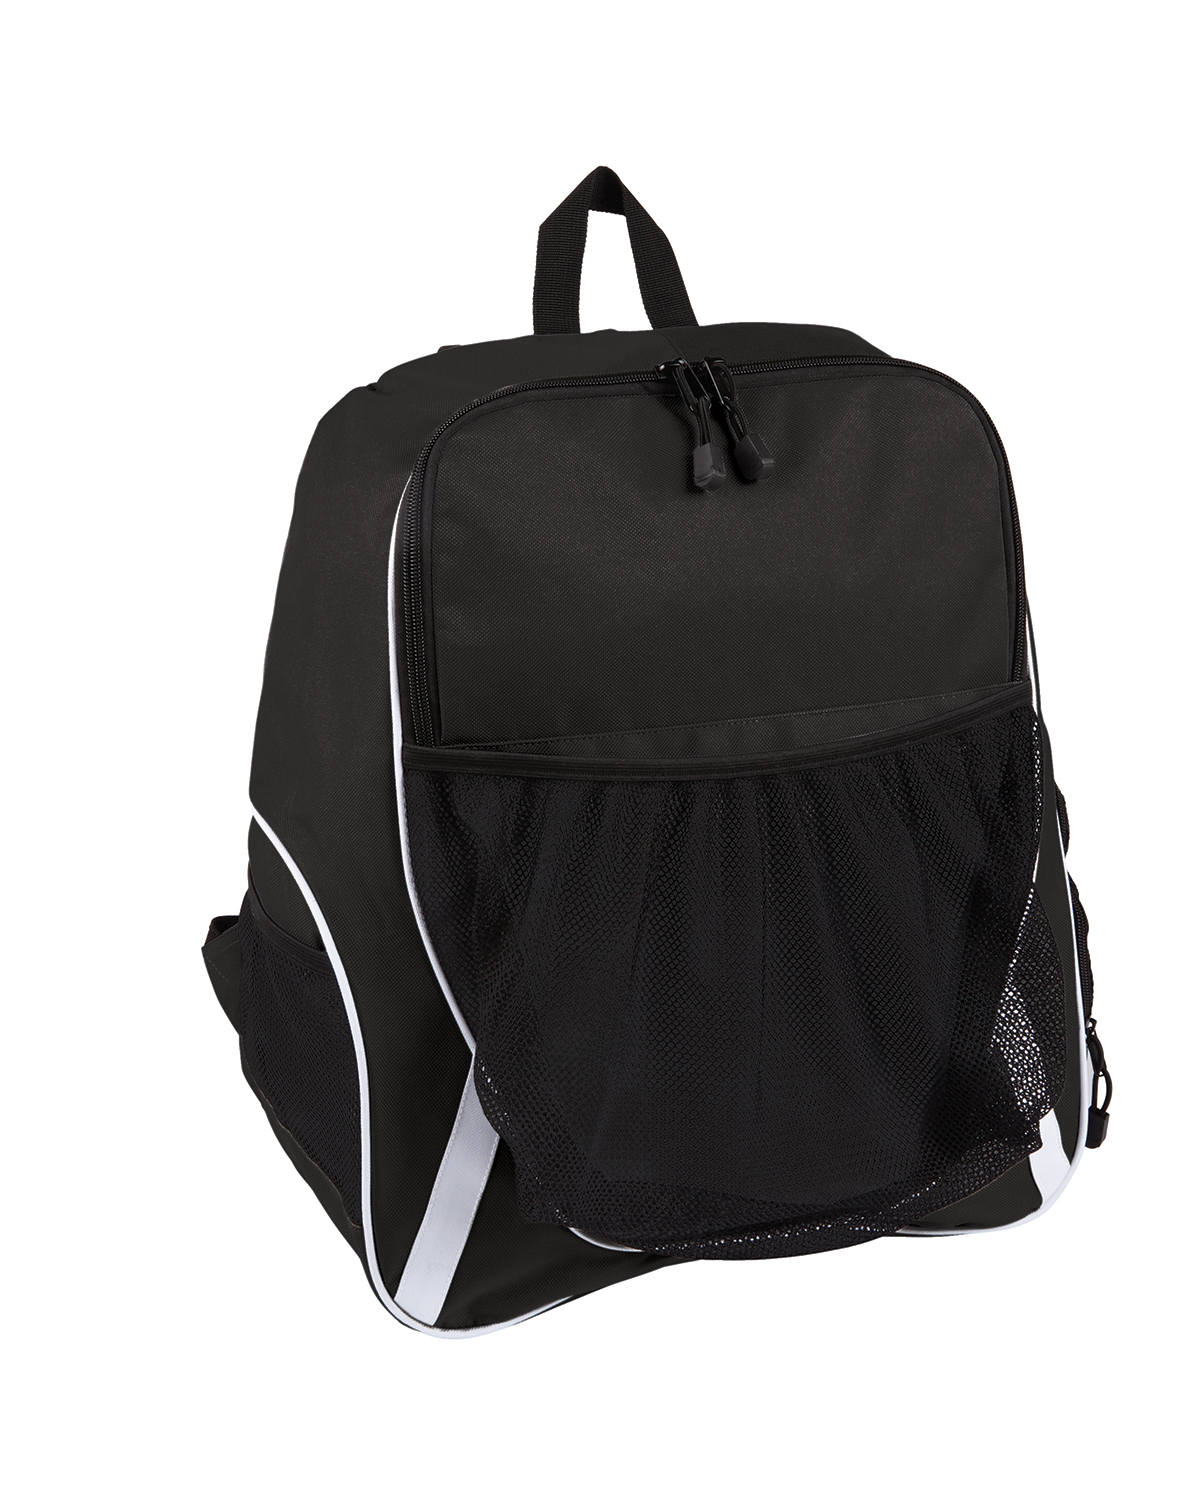 Team 365 TT104 - Equipment Backpack